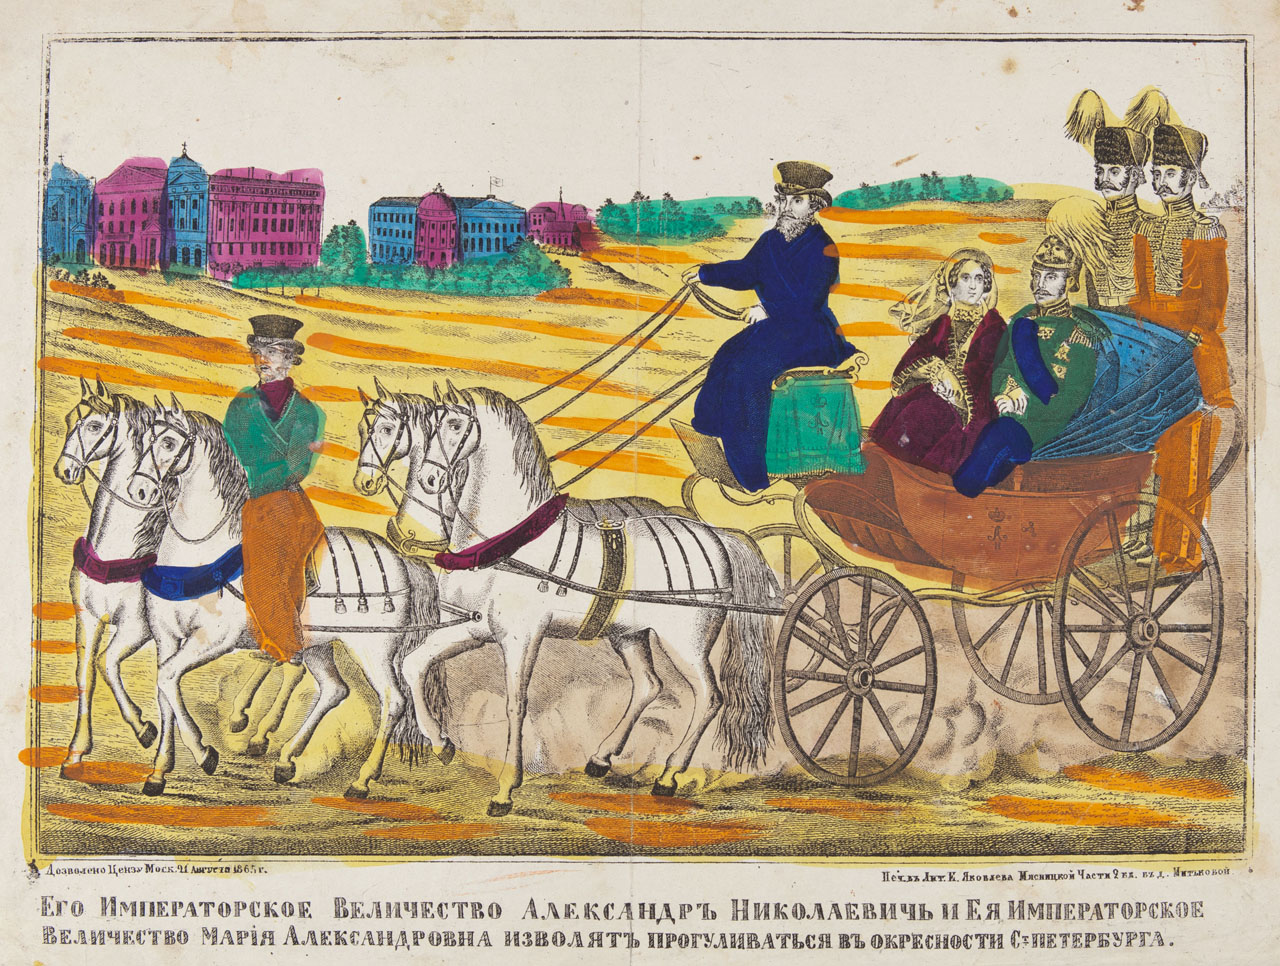 Recurring themes acquired modern details. Today, they give an insight into court life and how lubok was influenced by contemporary art. // Emperor Alexander II and family riding in a carriage near St. Petersburg; 1865